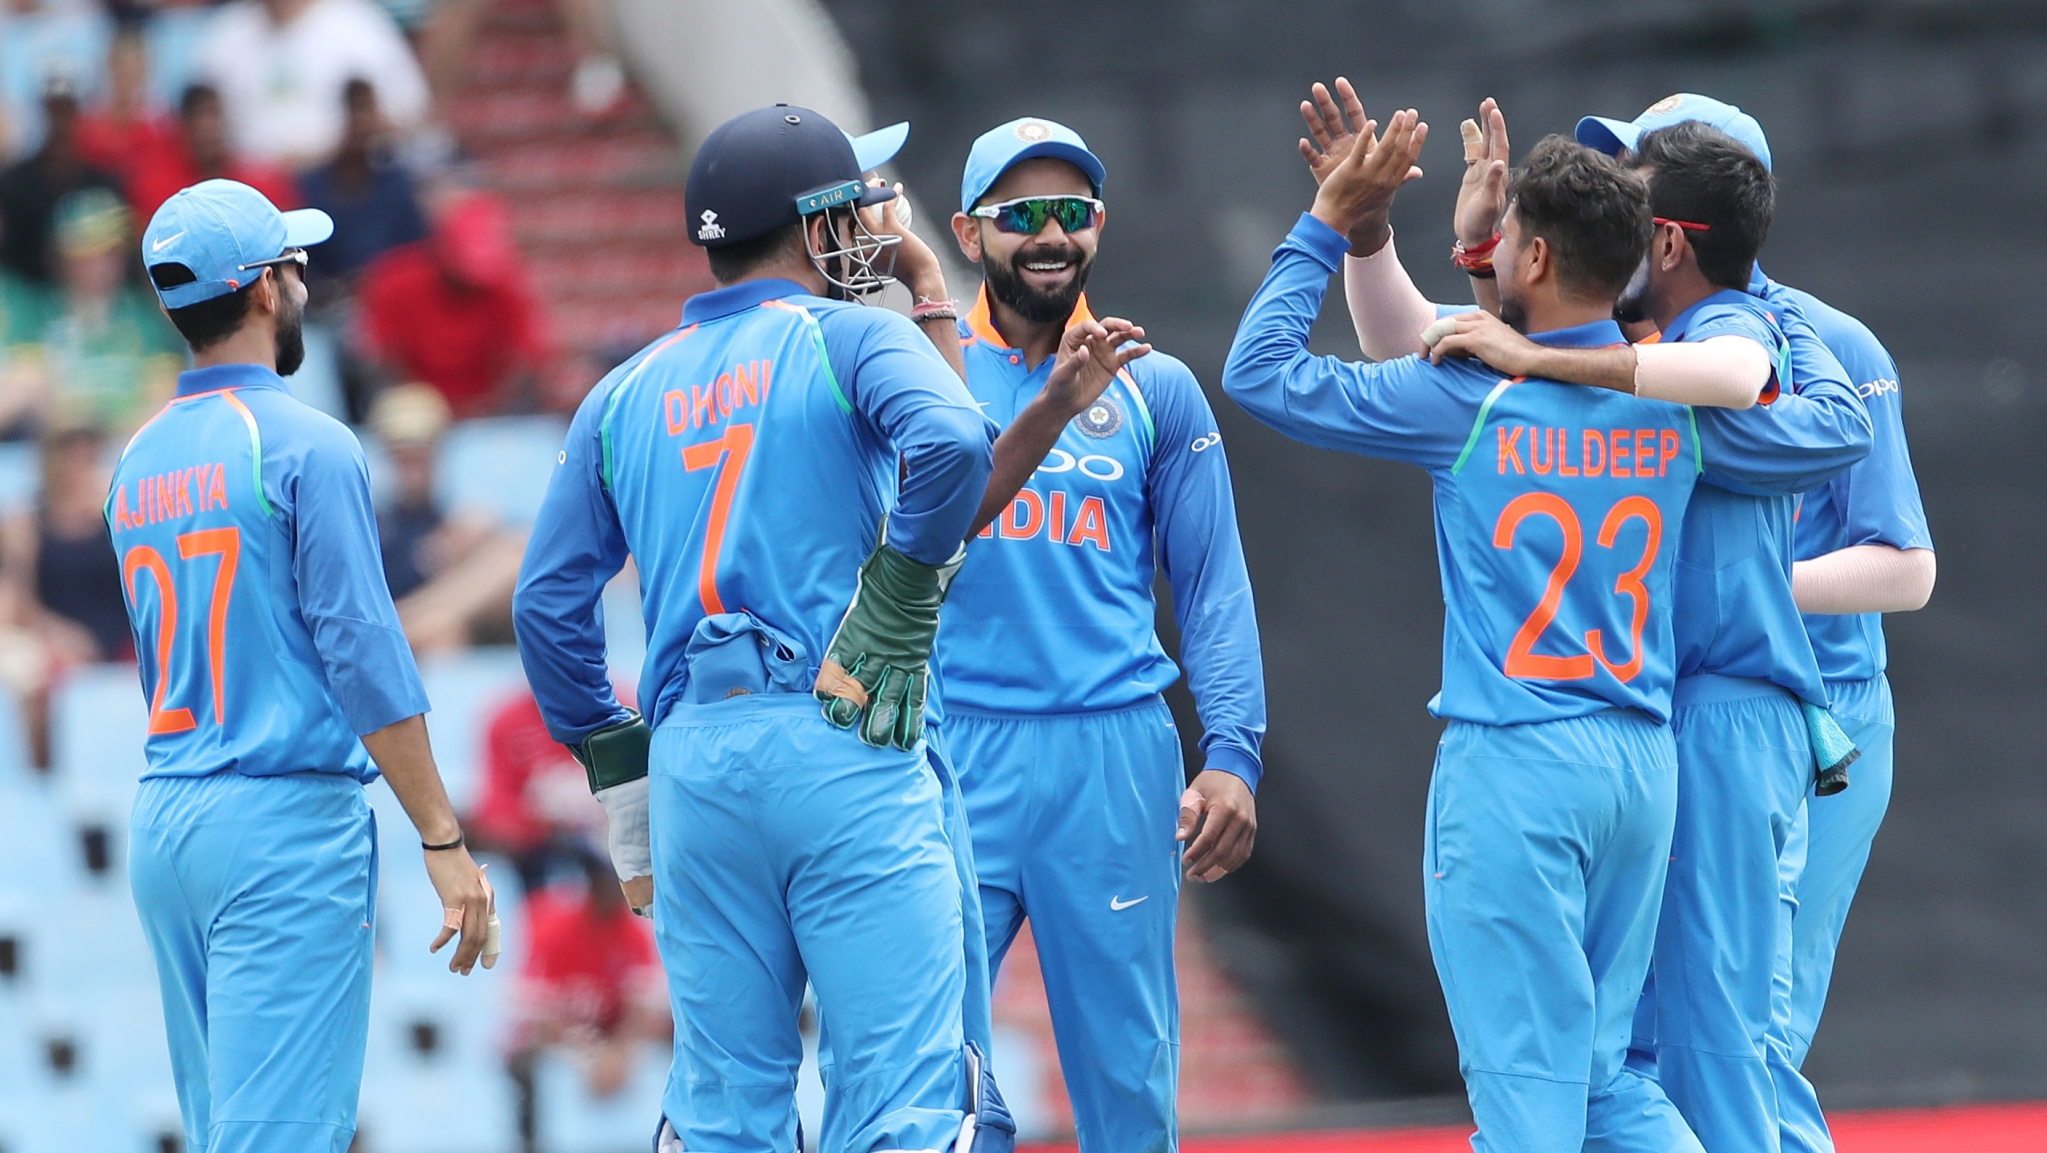 an interesting odi cricket match About cricketgateway the cricket gateway app gives you full tournament coverage of all the action from scotland vs pakistan 2018, nidahas trophy 2018 , independence cup 2017, ind vs aus 2017, ind vs sl 2017, ind vs nz, sl vs aus, wi vs ind, hero cpl 2016, zim vs ind, world t20, mcl and psl 2016, psl 2017 and psl 2018 including live scores, official live stream of the games, match highlights.